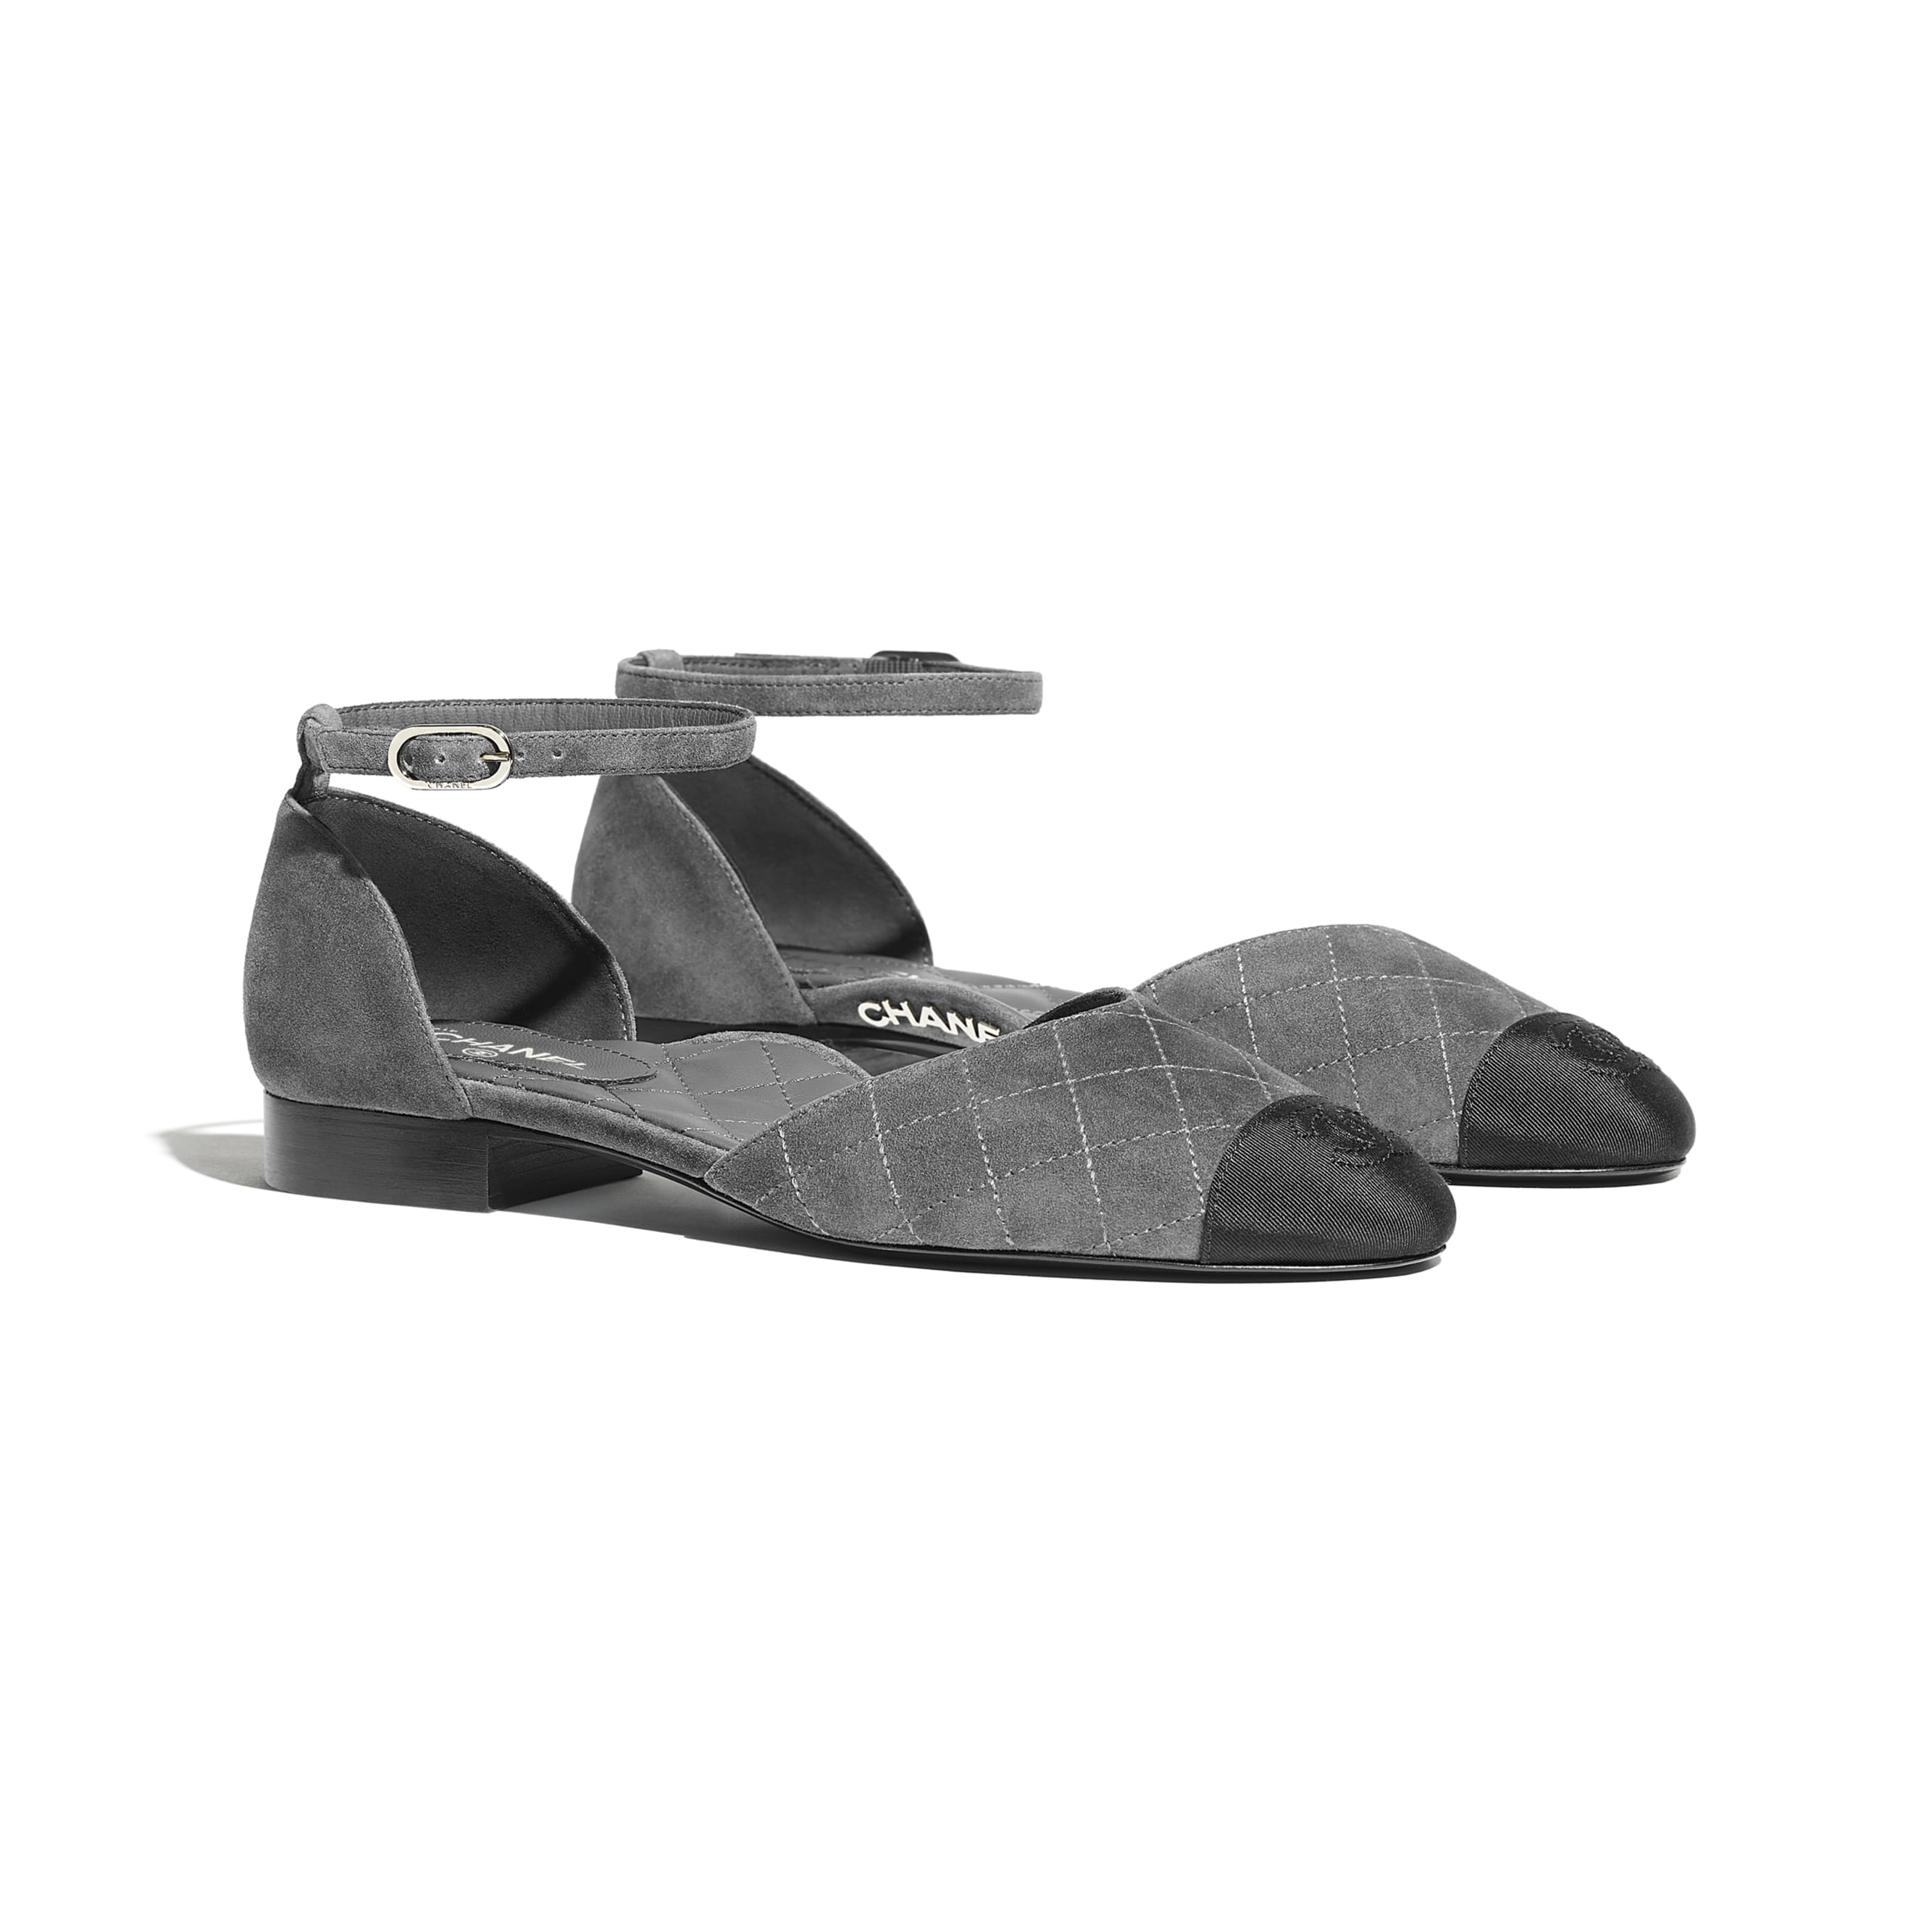 Mary Janes  - Grey & Black - Suede Calfskin & Grosgrain - CHANEL - Alternative view - see standard sized version